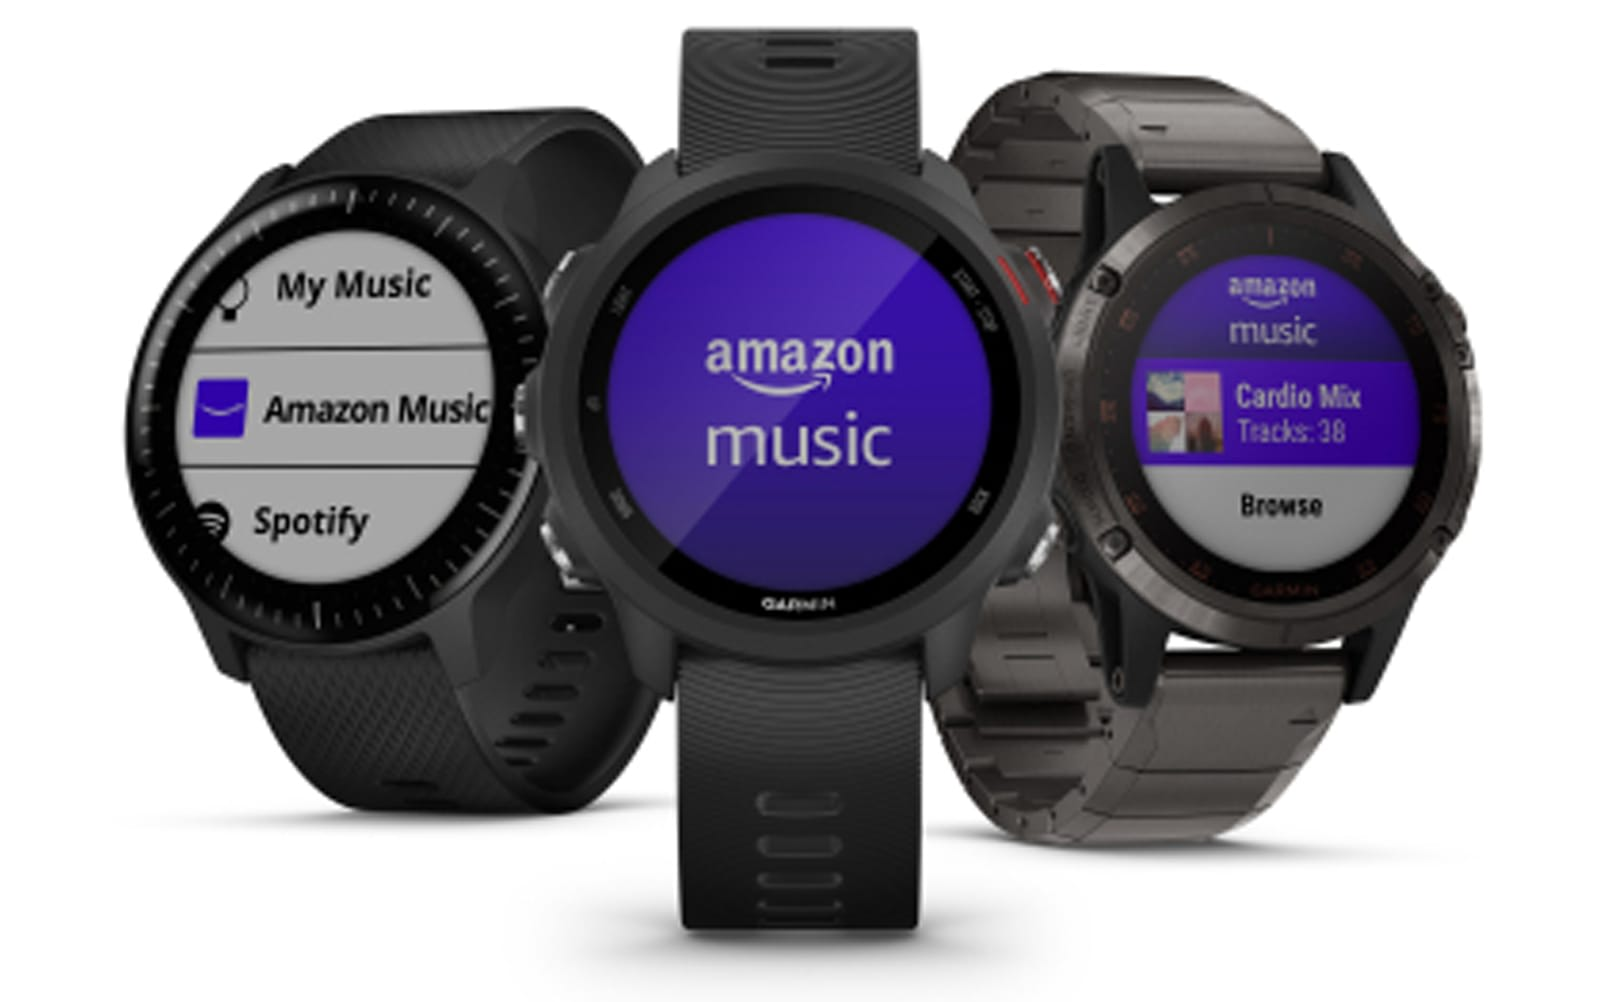 Garmin adds Amazon Music to its fitness watches